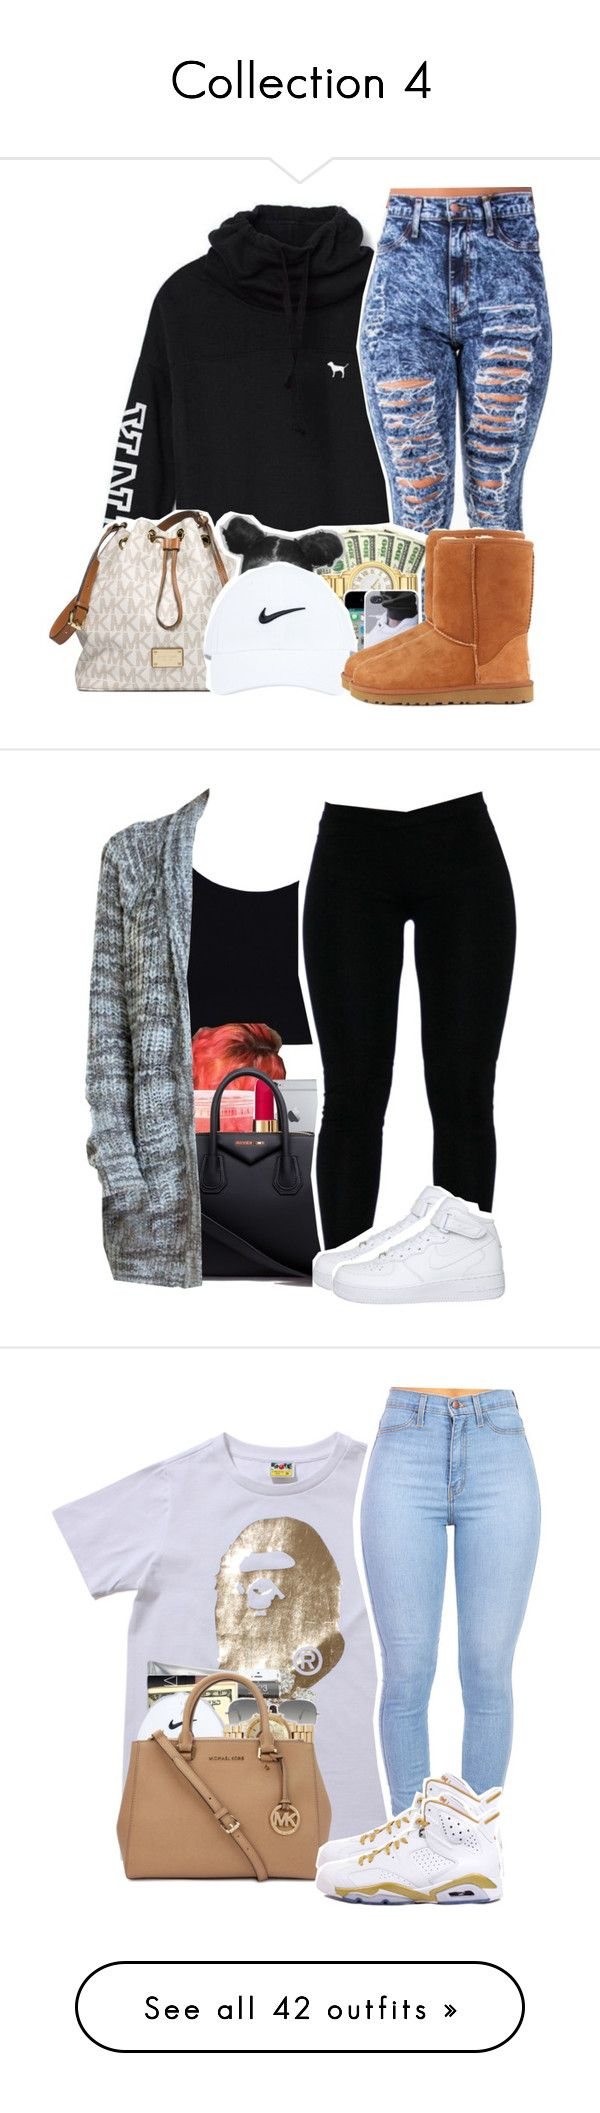 """Collection 4"" by sourpatchkid101 ❤ liked on Polyvore featuring Victoria's Secret, MICHAEL Michael Kors, UGG Australia, Chanel, Givenchy, NIKE, …"